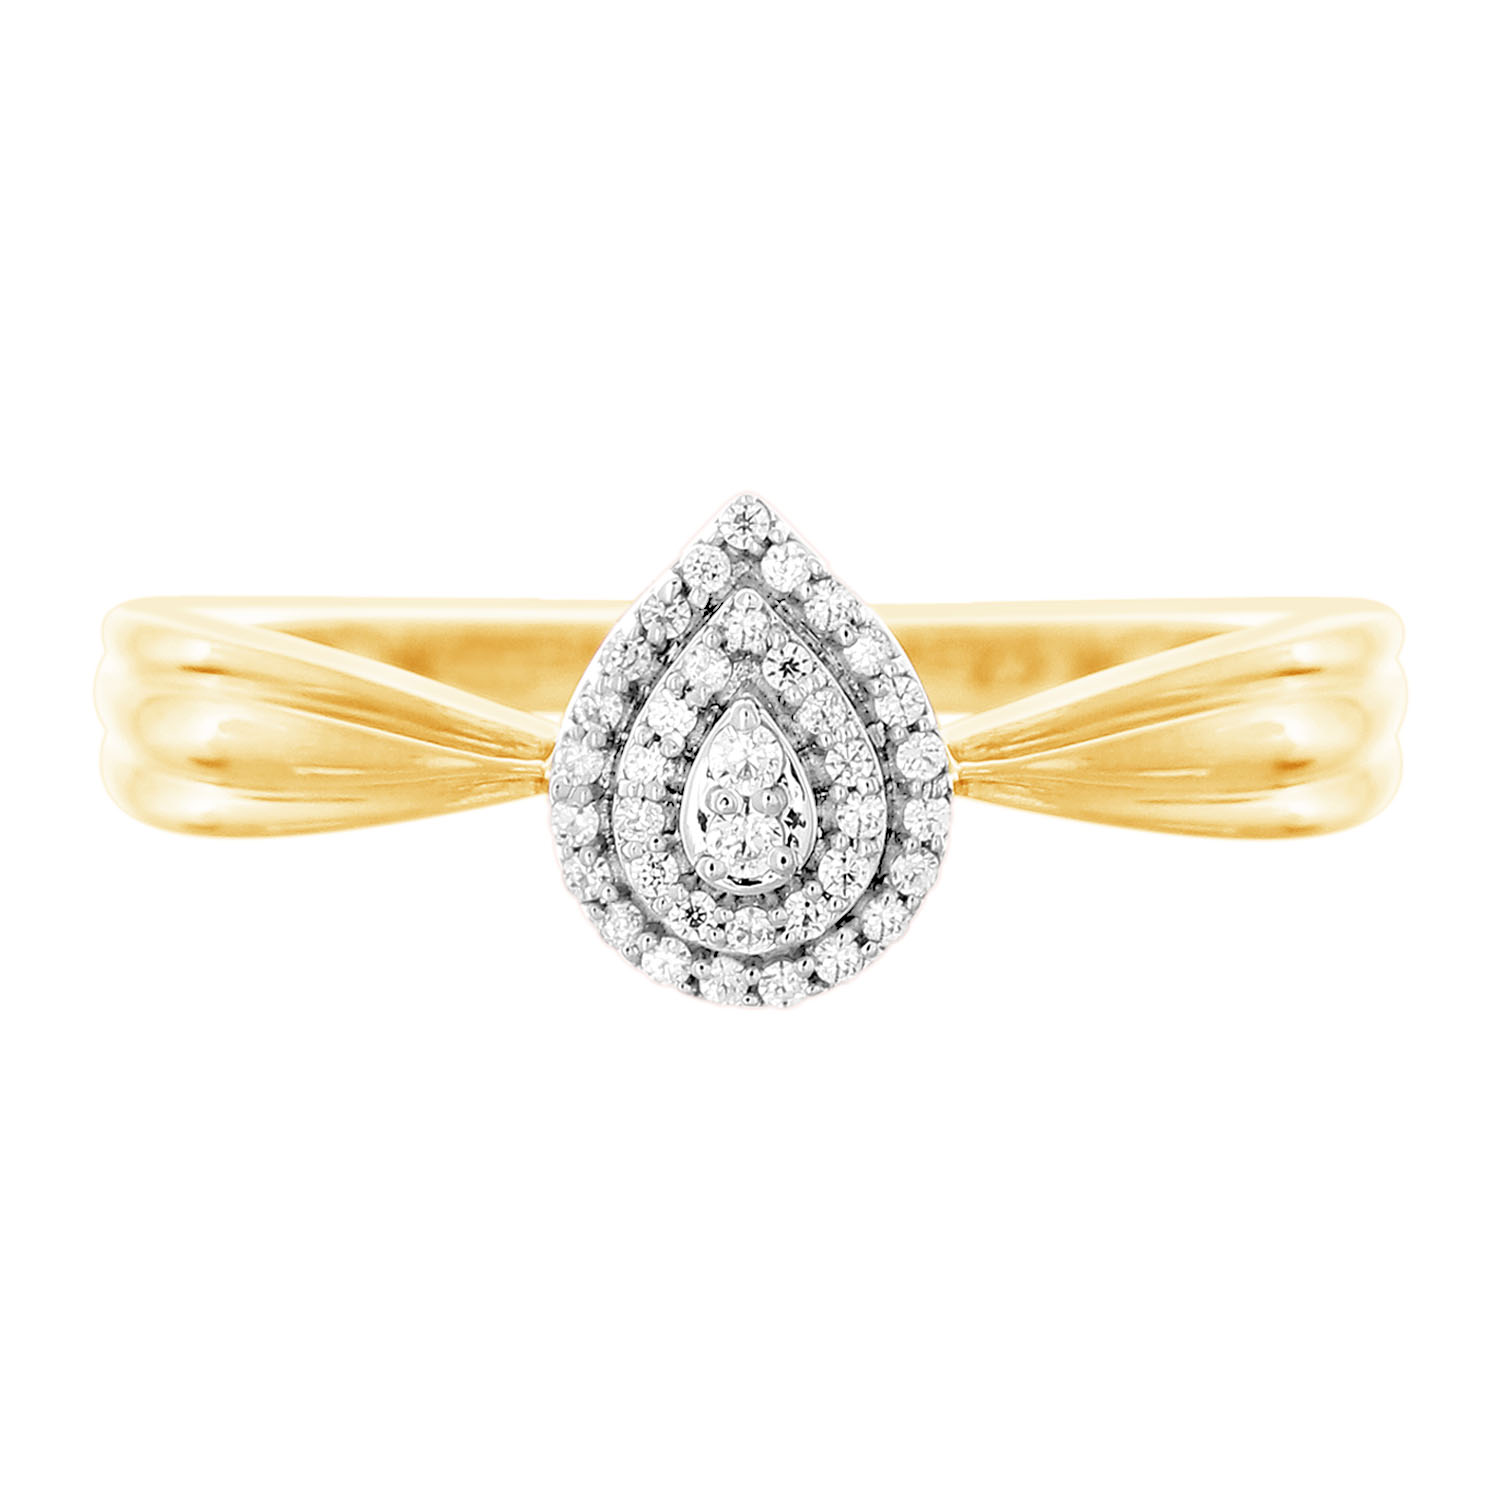 9ct Yellow Gold 0.10 Carat Pear Shape Diamond Ring with 37 Brilliant Cut Diamonds